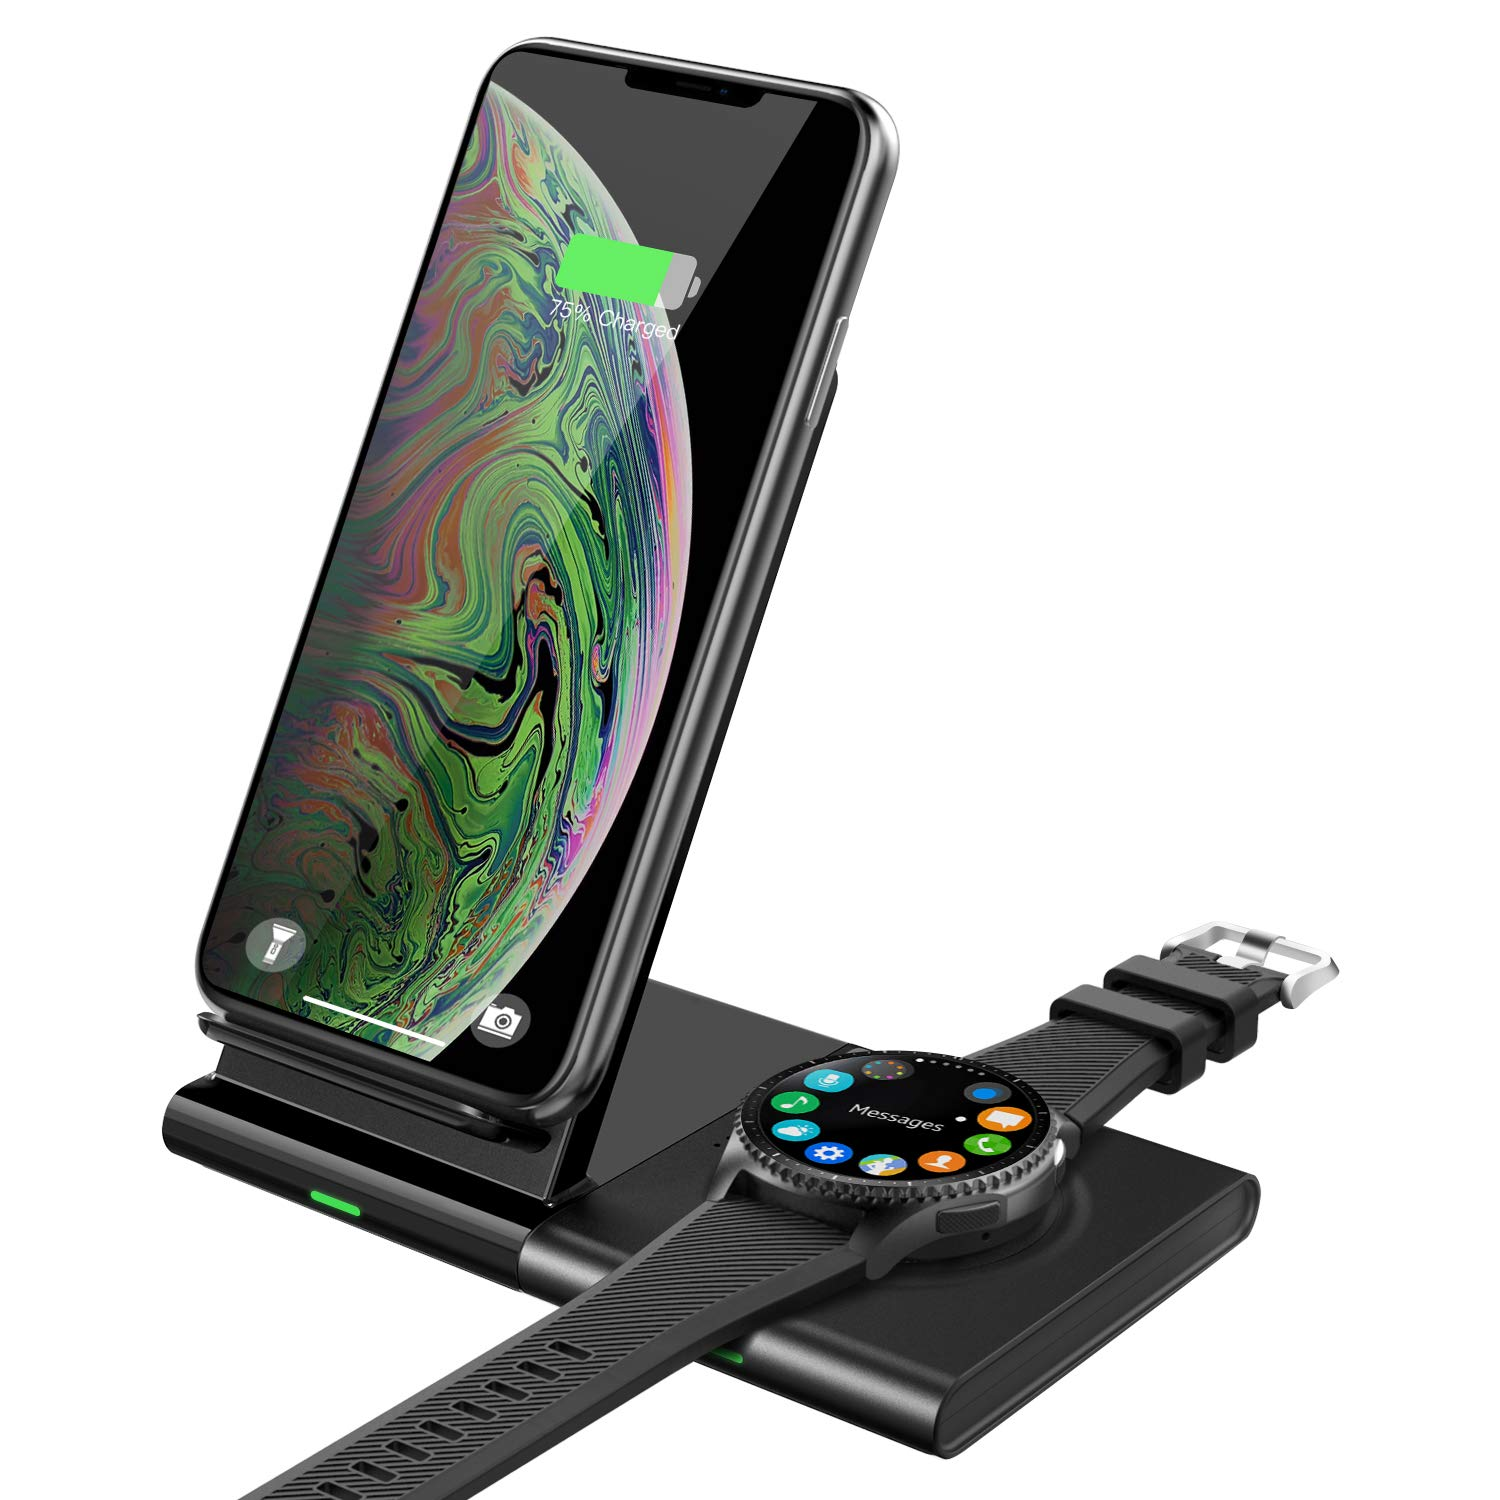 MoKo Wireless Charger Duo Stand, 2 in 1 Dual Qi 10W Fast Charging Station Pad & Dock for Samsung Galaxy Watch 42/46mm, Galaxy Buds, Gear S3, Galaxy Watch Active, Galaxy Note 10/10 Plus/S10/S10+/S9/S8